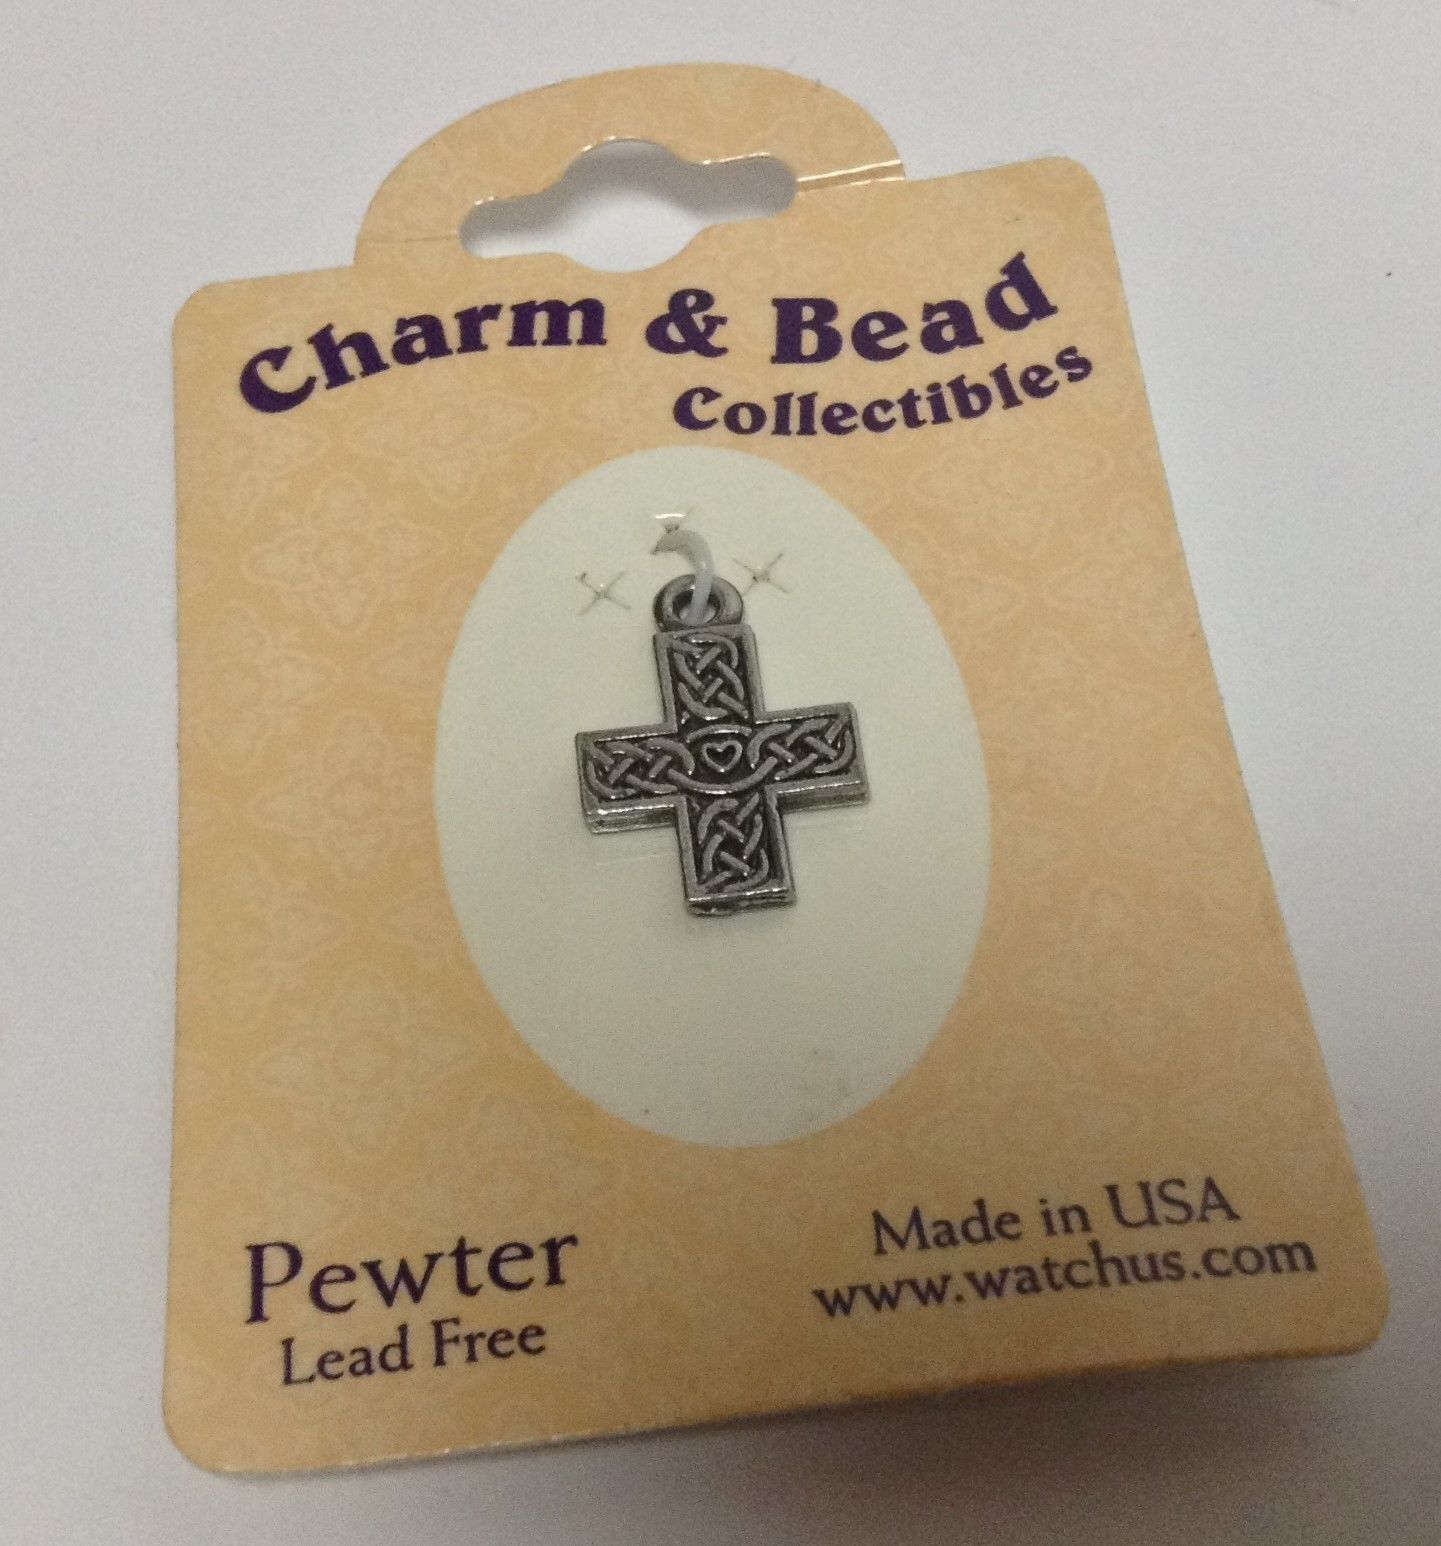 Pewter Celtic Cross Bracelet Charm NWT Charm & Bead Collectibles